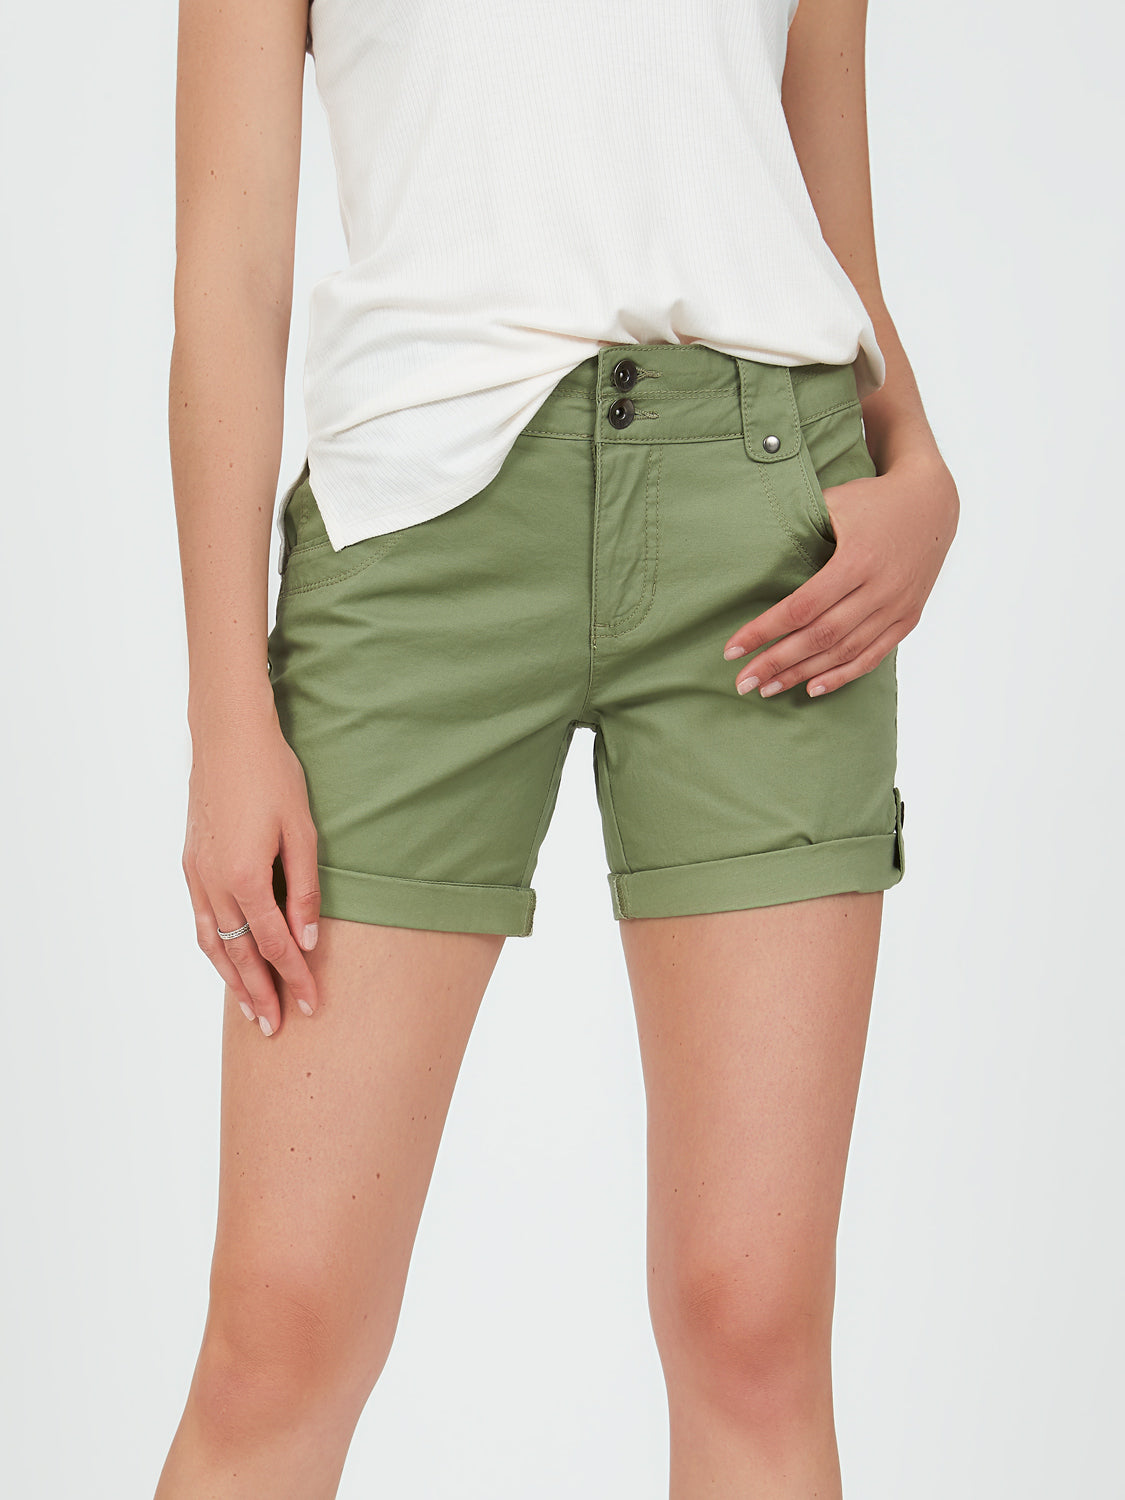 Rolled-Up Shorts